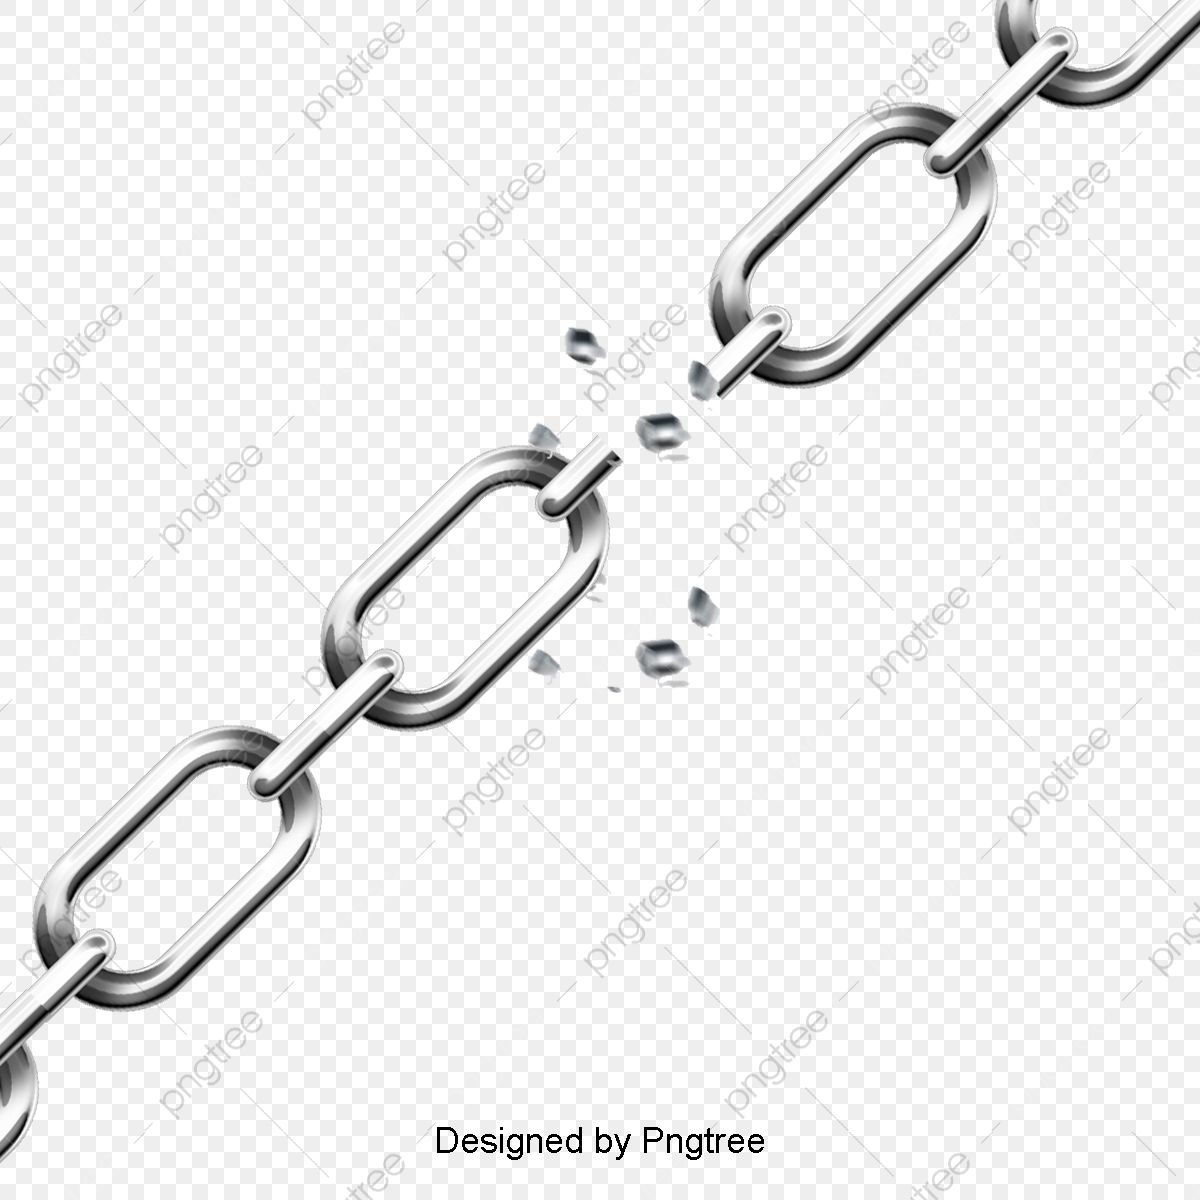 Broken Chains, Chain, Shackle, Metal PNG Transparent Clipart Image.